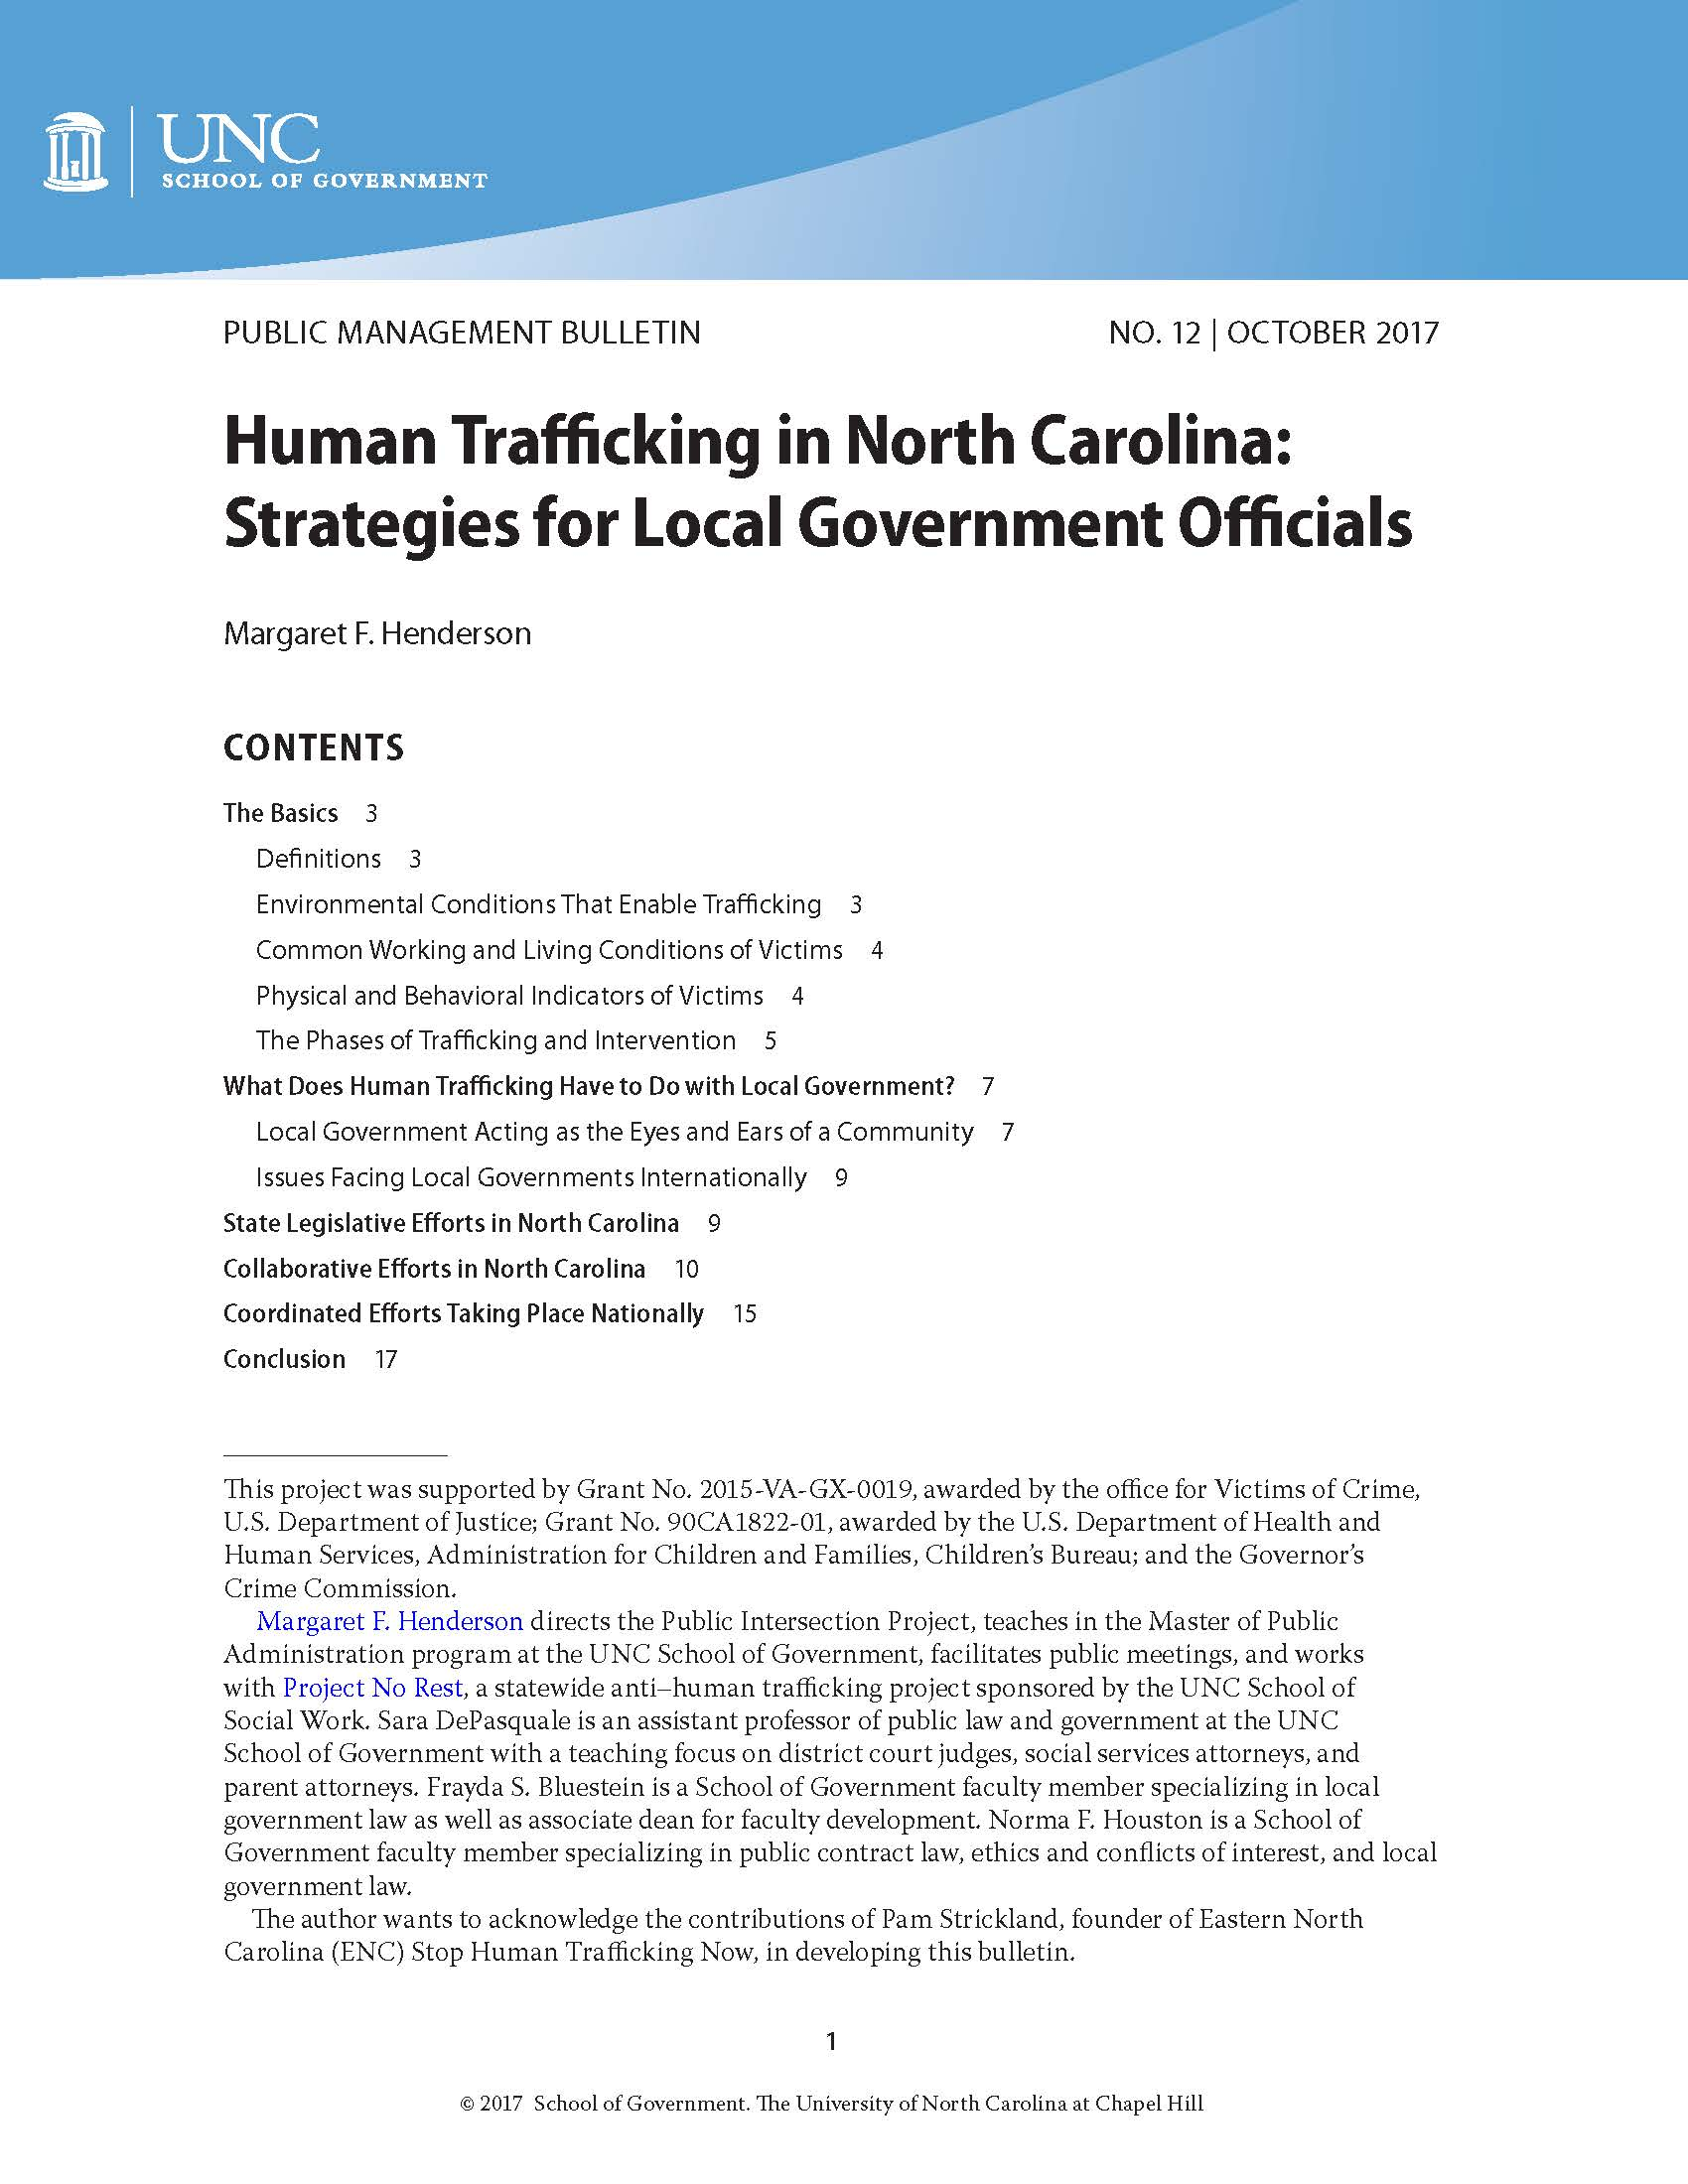 Cover image for Human Trafficking in North Carolina: Strategies for Local Government Officials